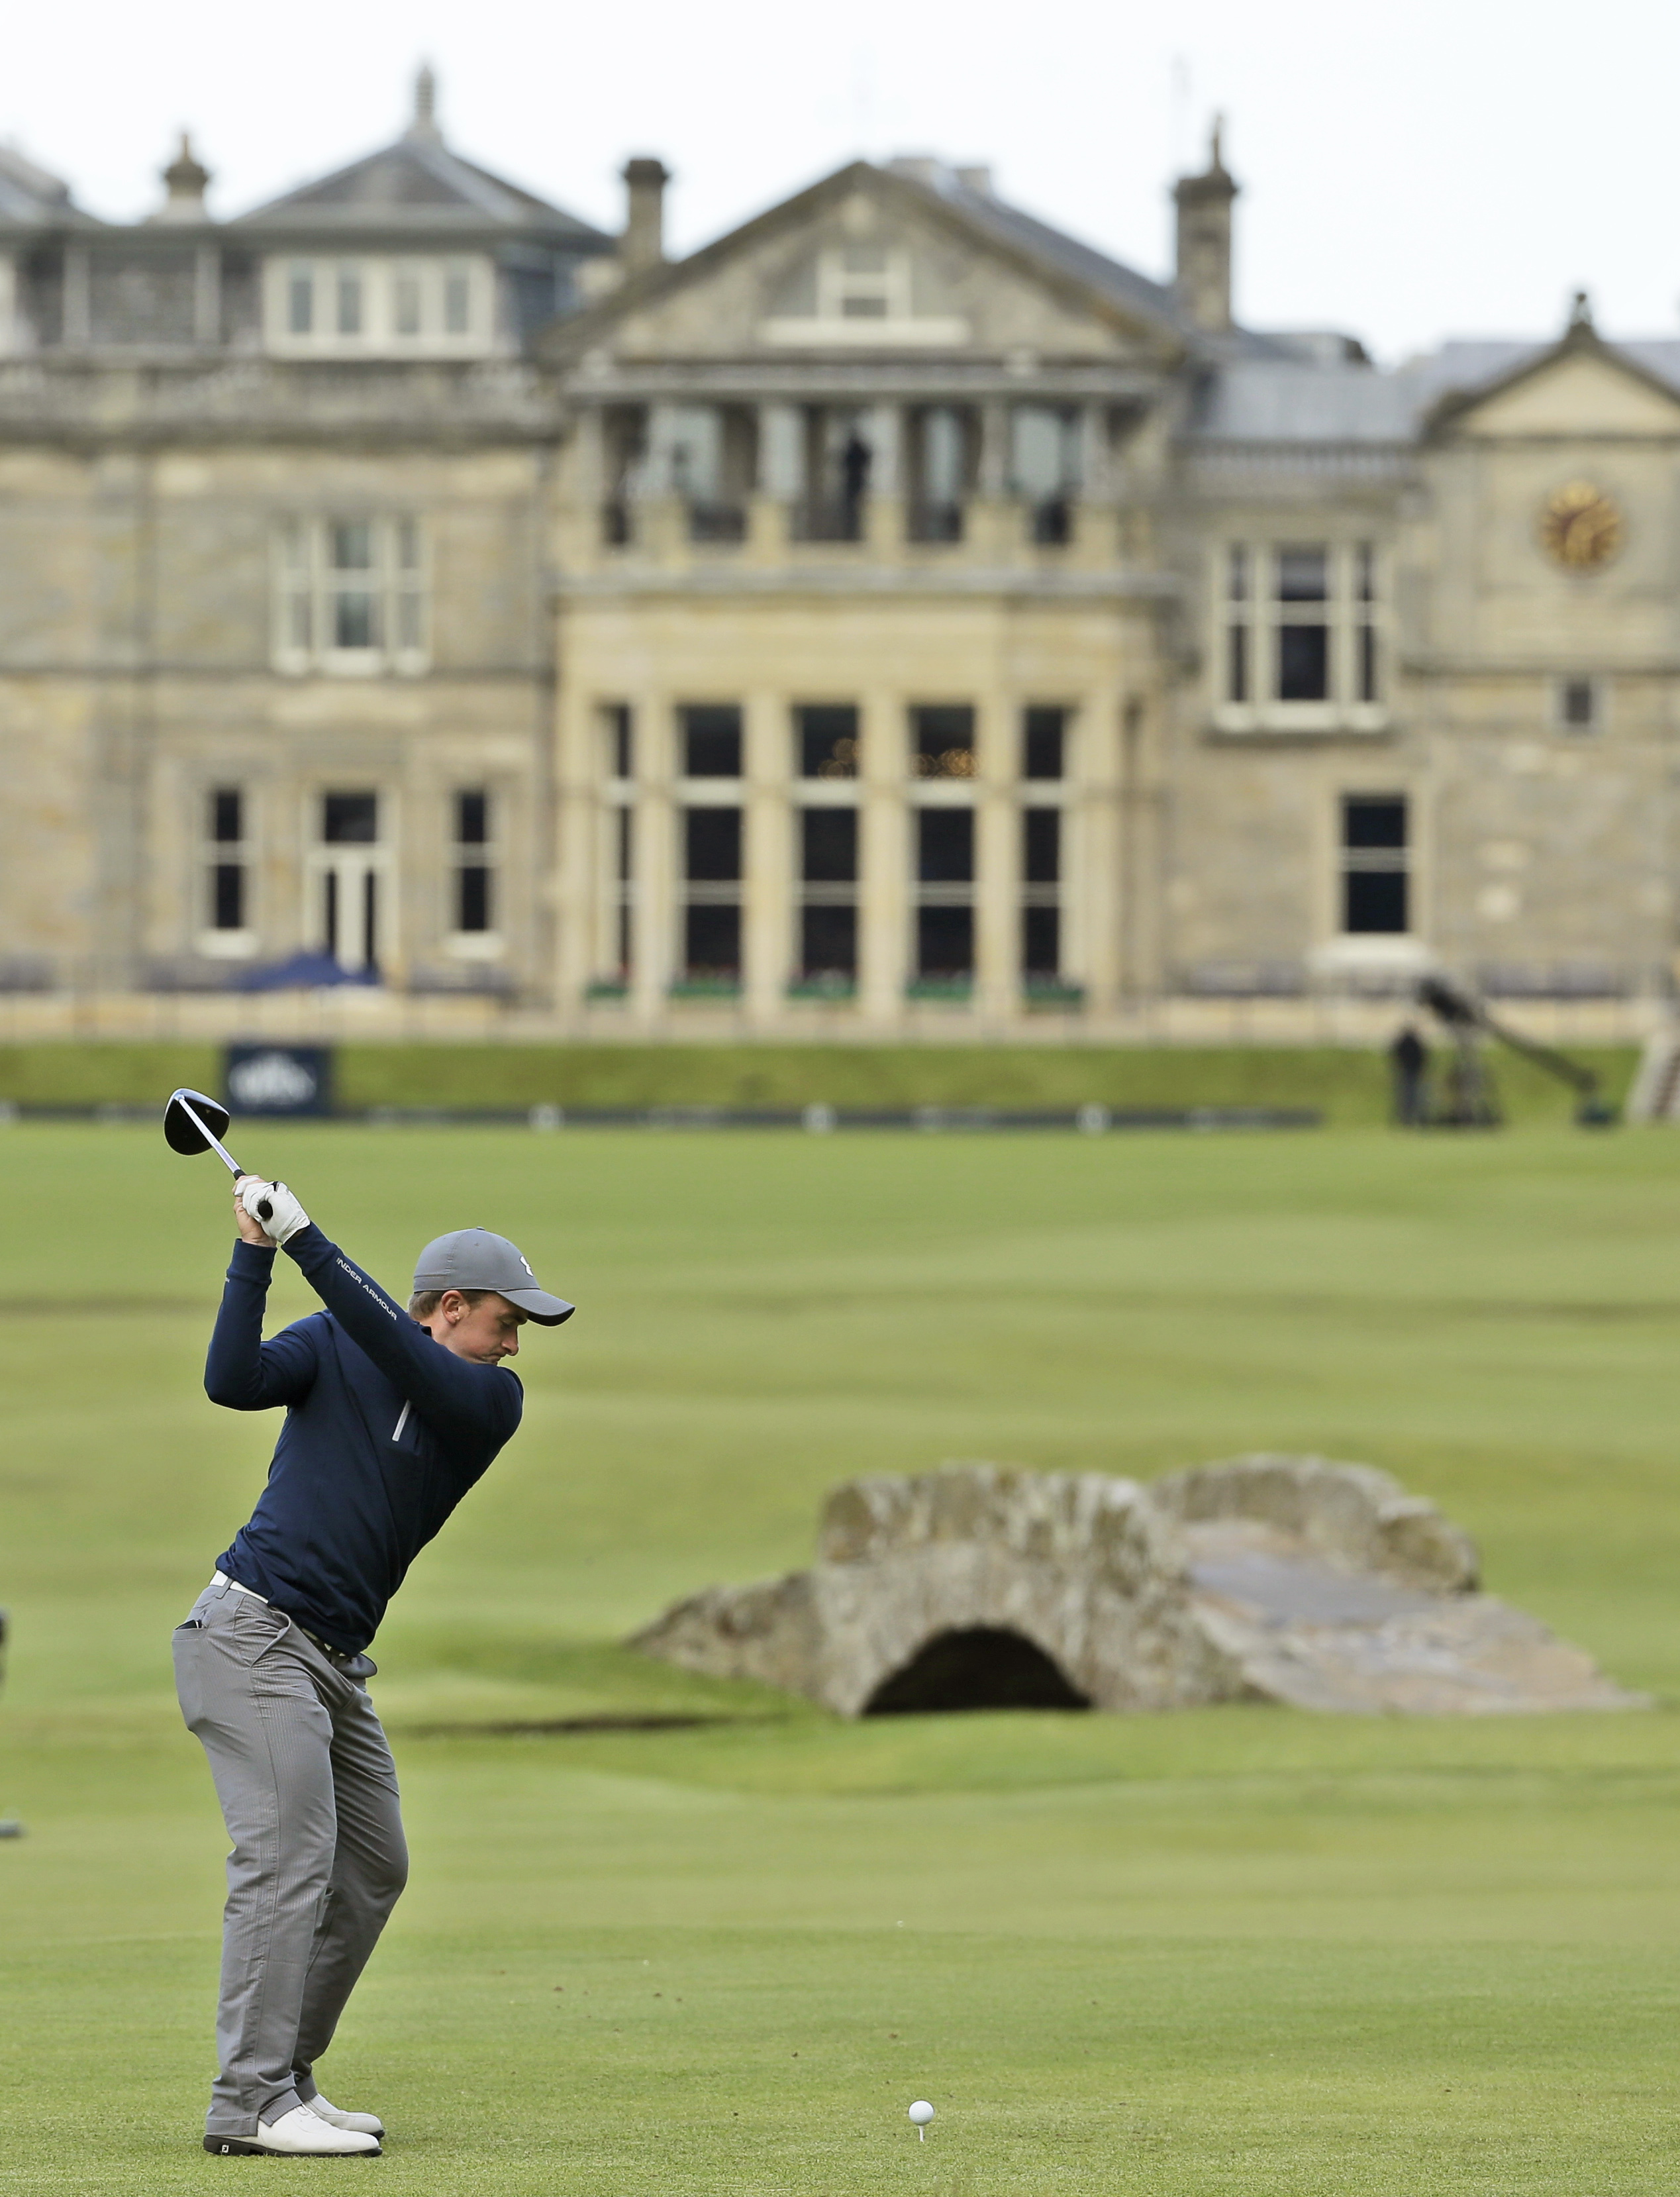 FILE - In this July 19, 2015, file photo, Ireland's Paul Dunne plays from the 18th tee during the third round at the British Open golf tournament at the Old Course, St. Andrews, Scotland. Dunne shared the 54-hole lead, but bell back quickly in the final r